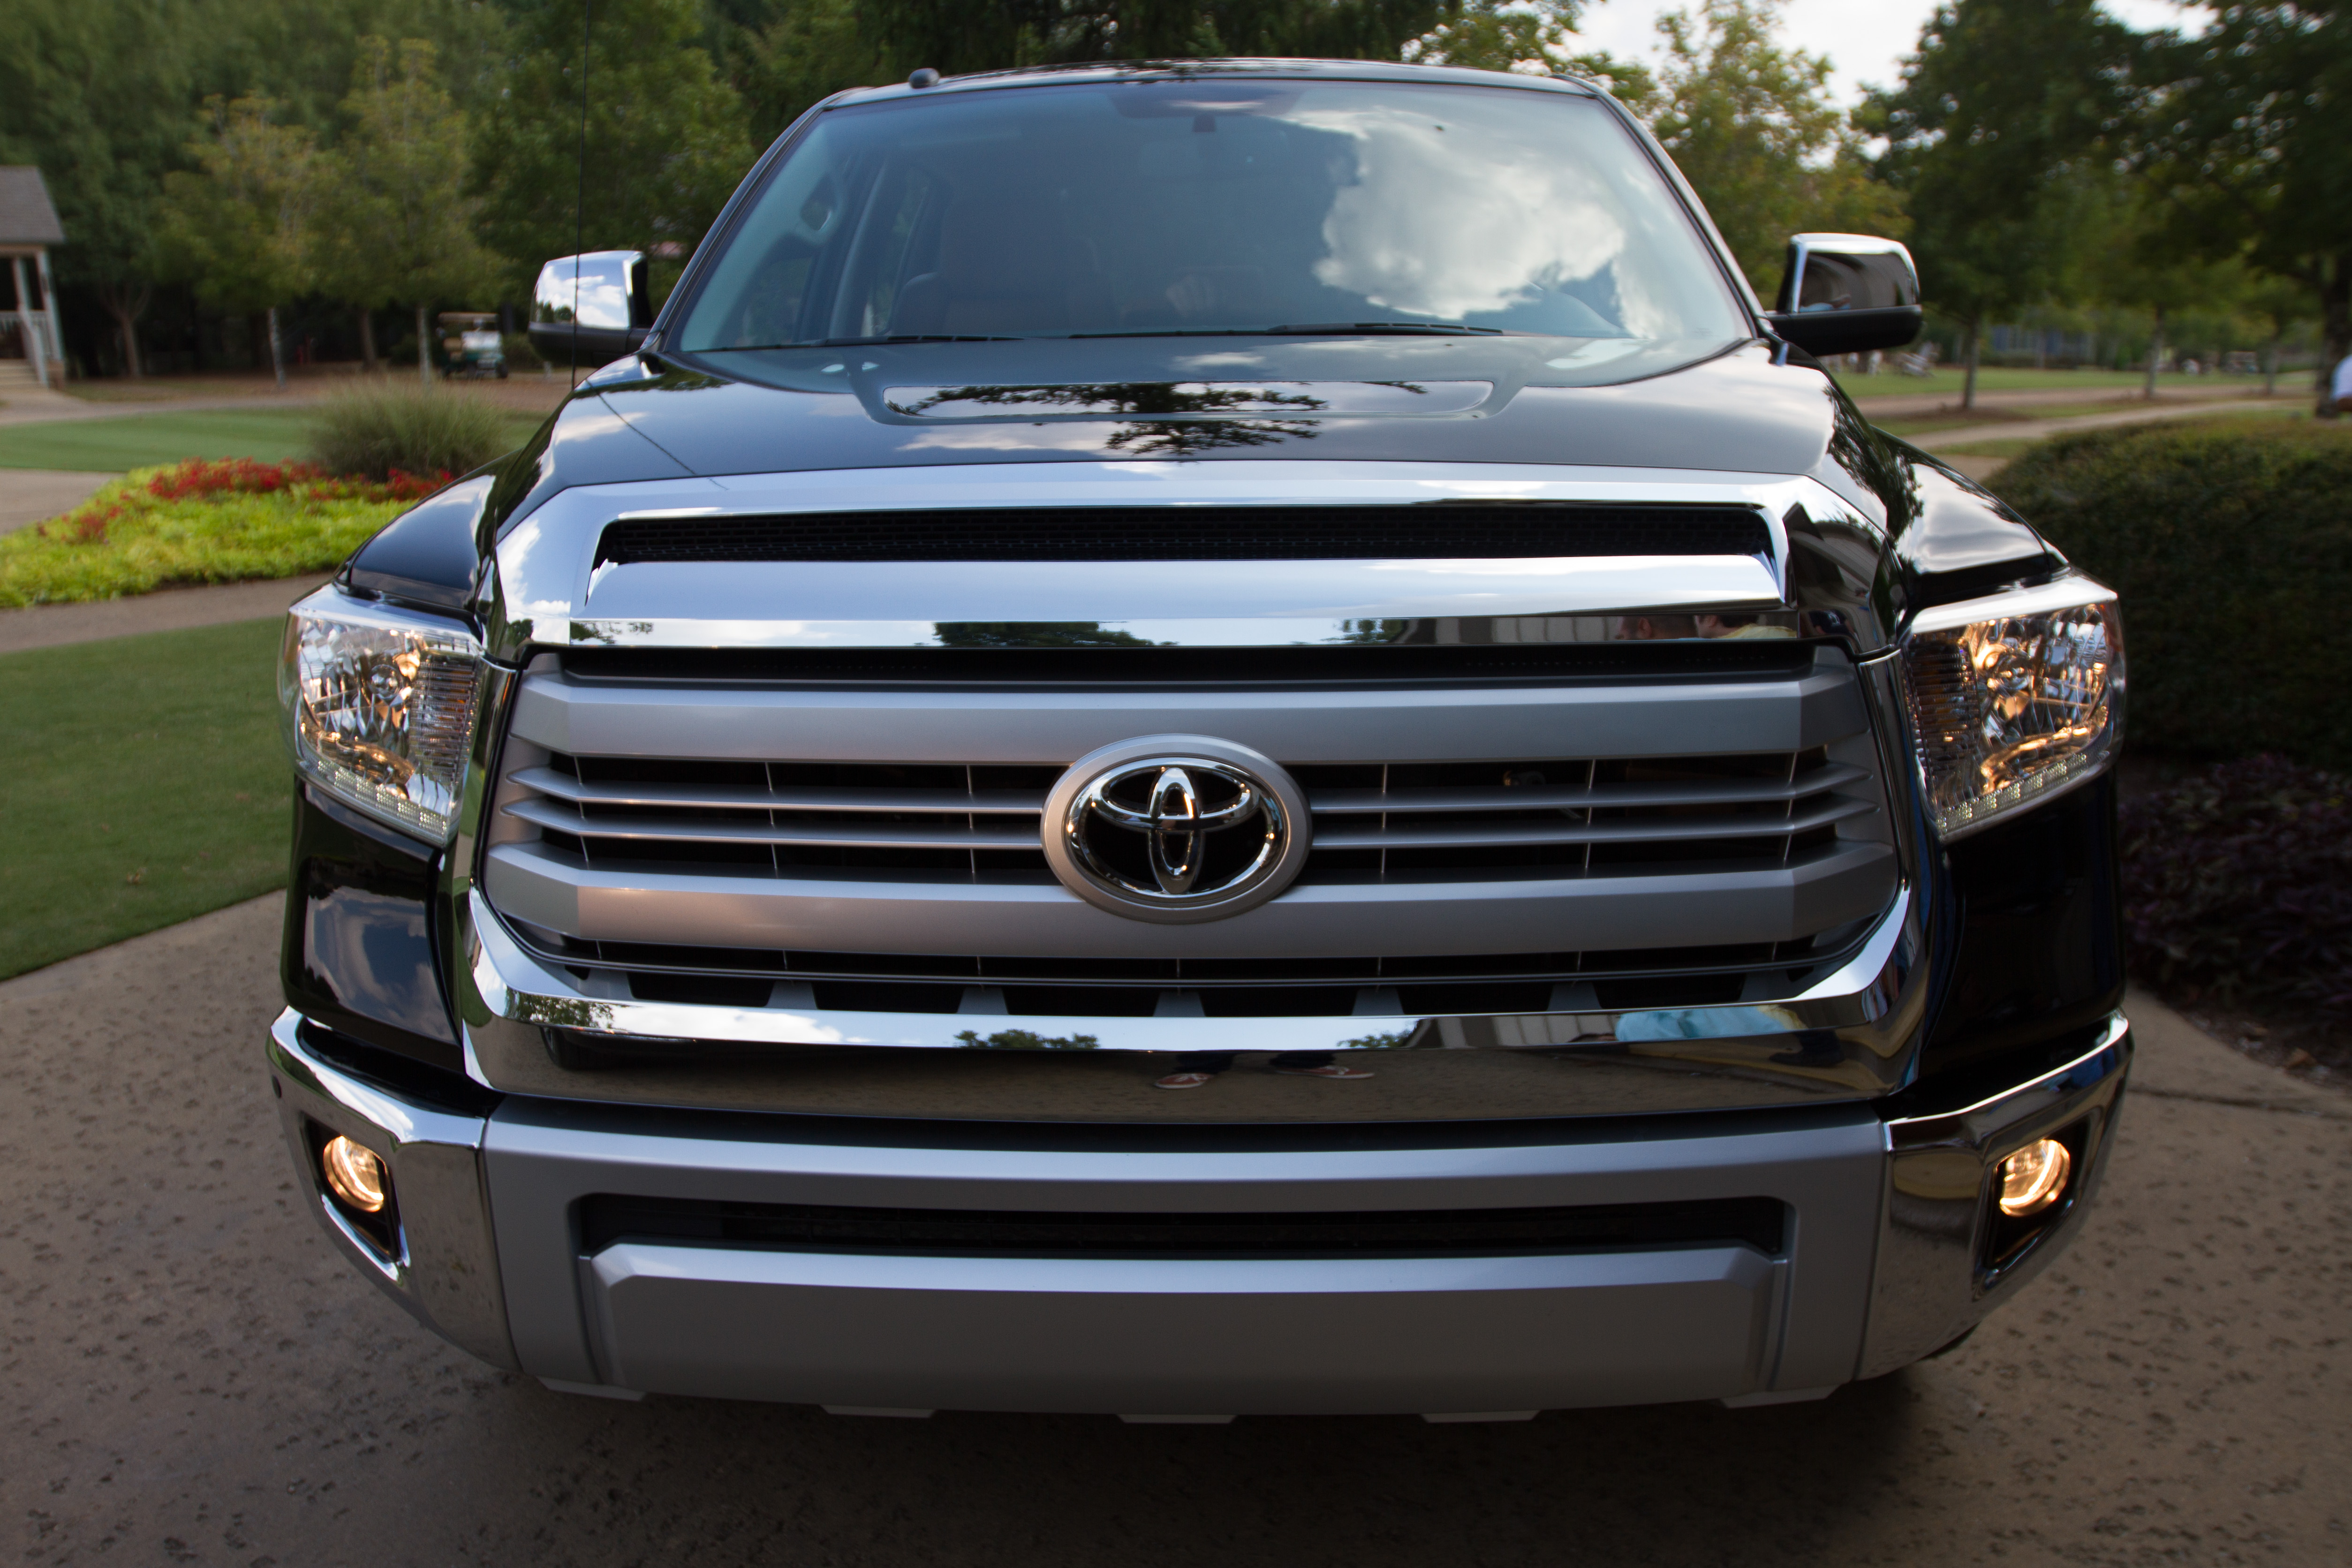 2014 toyota tundra full size pickup with suv comfort video. Black Bedroom Furniture Sets. Home Design Ideas